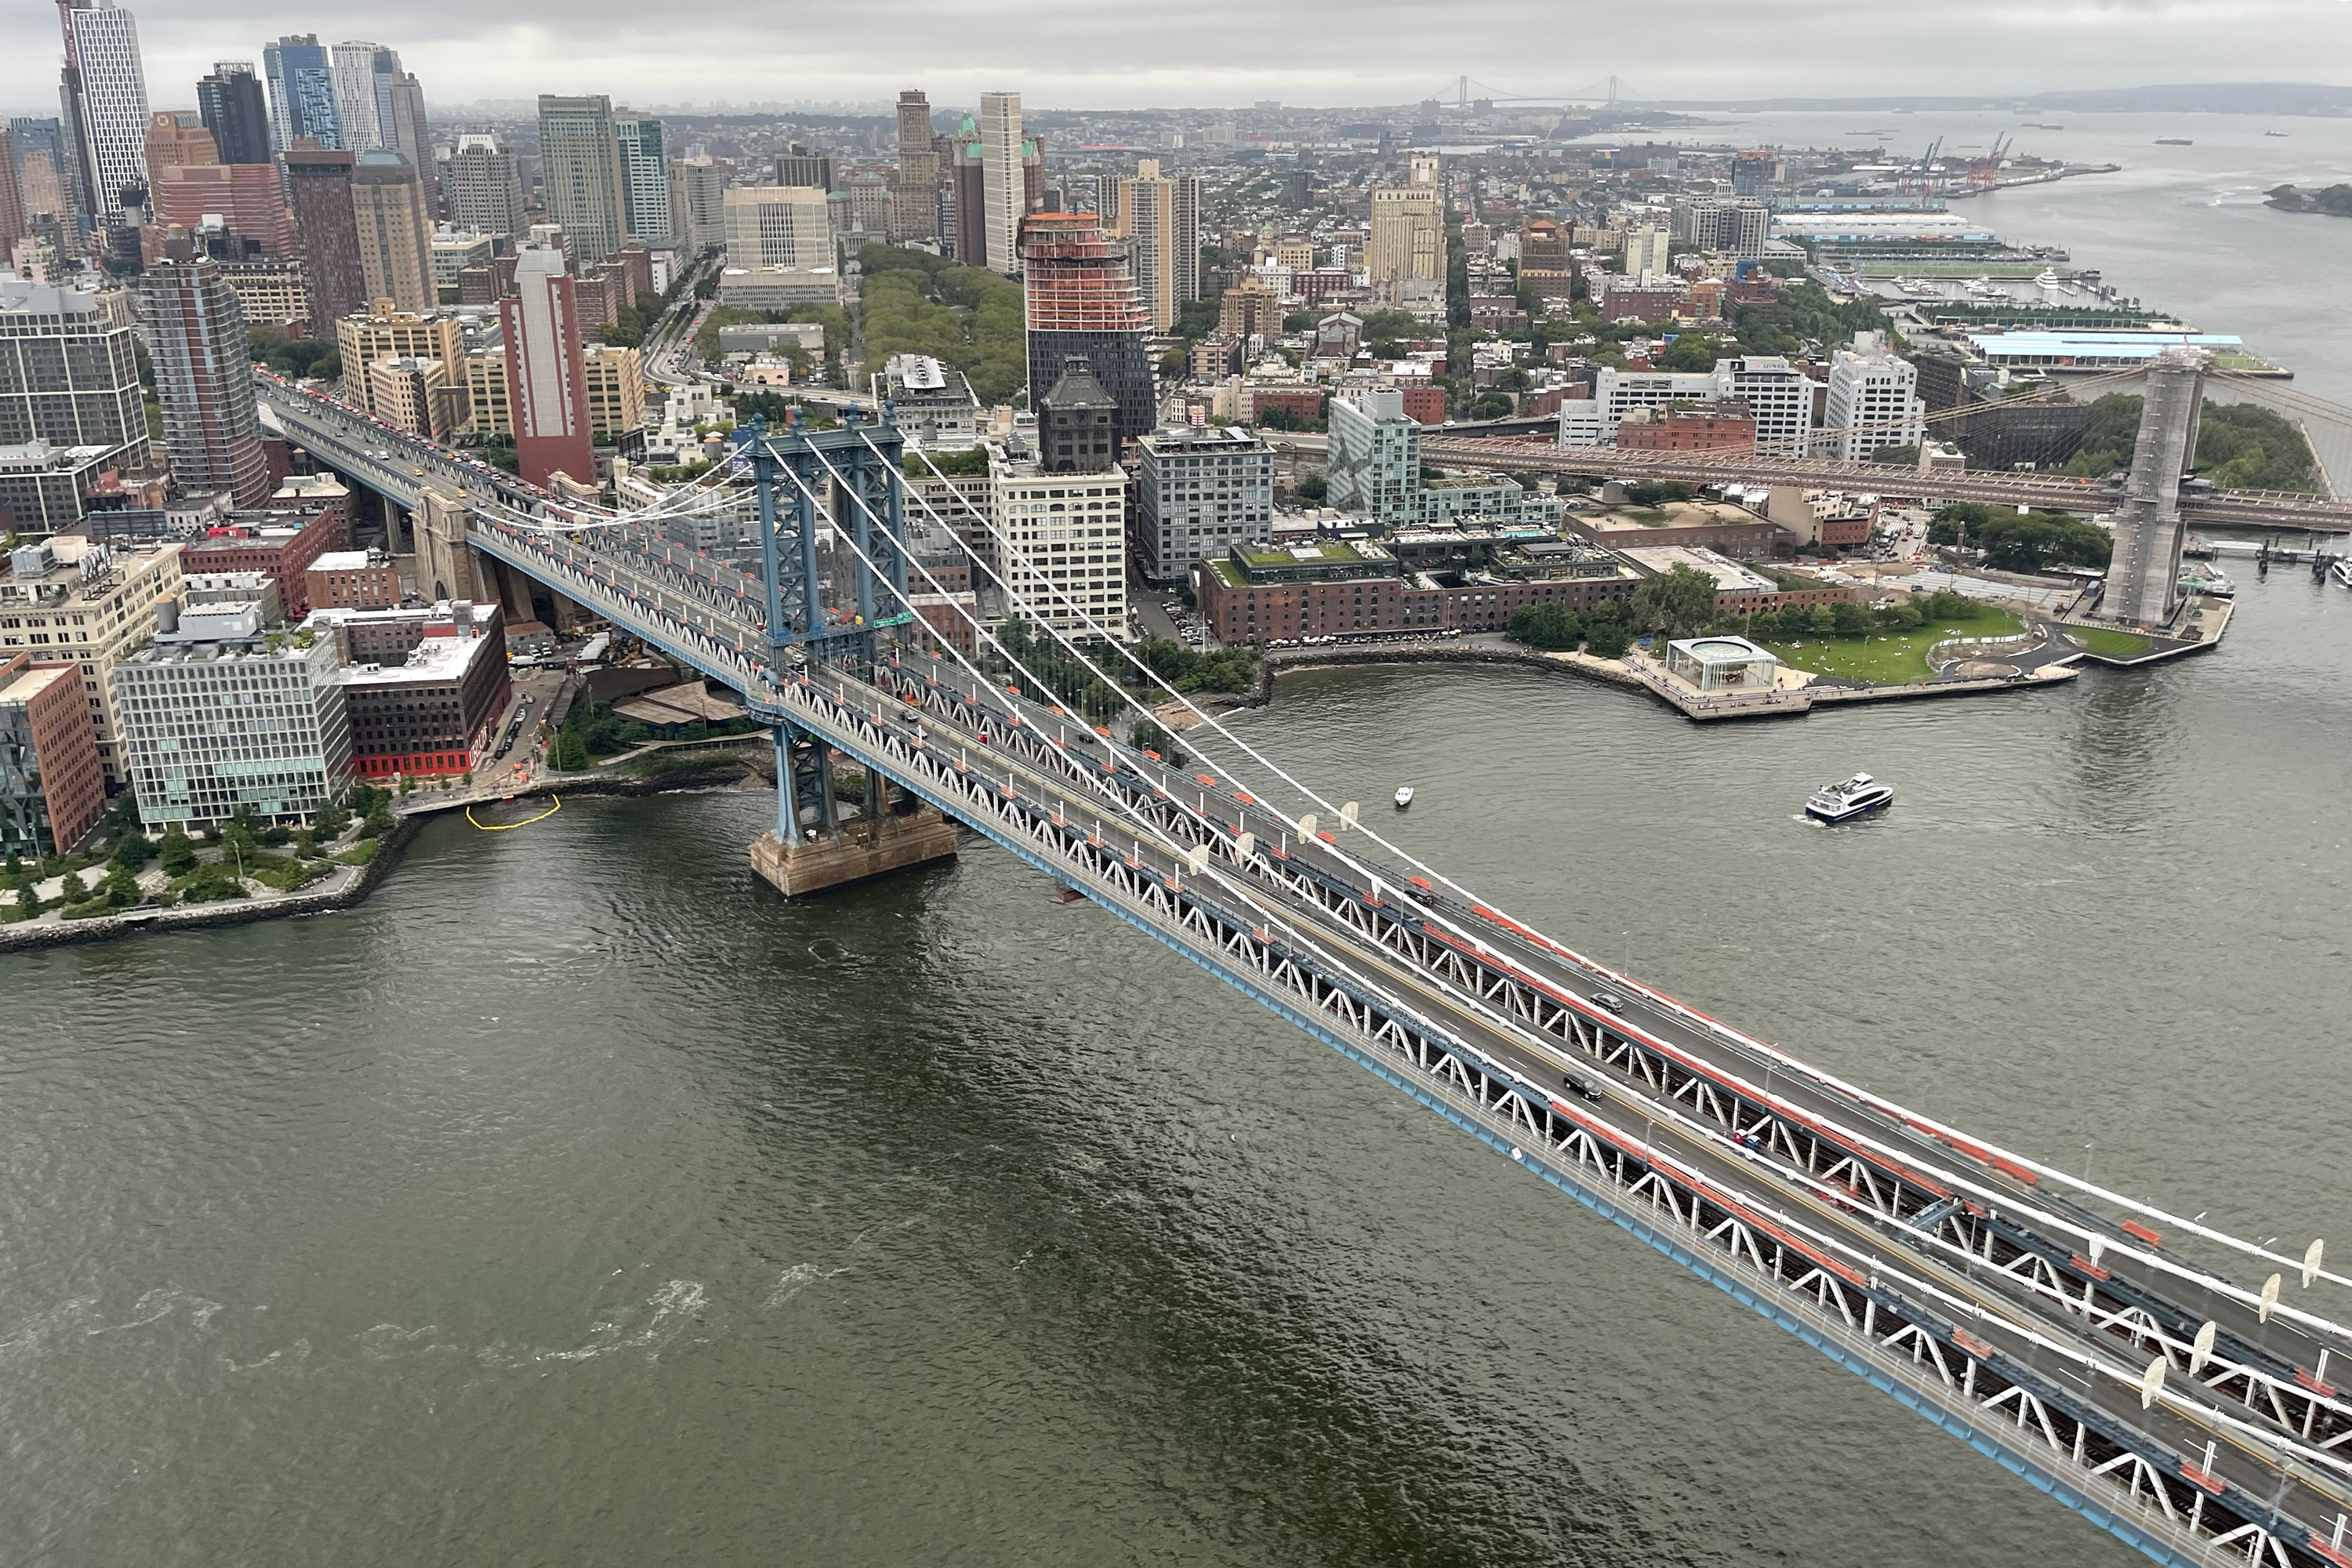 An aerial view of the Manhattan Bridge and the Dumbo section of Brooklyn on Aug 29th 2021